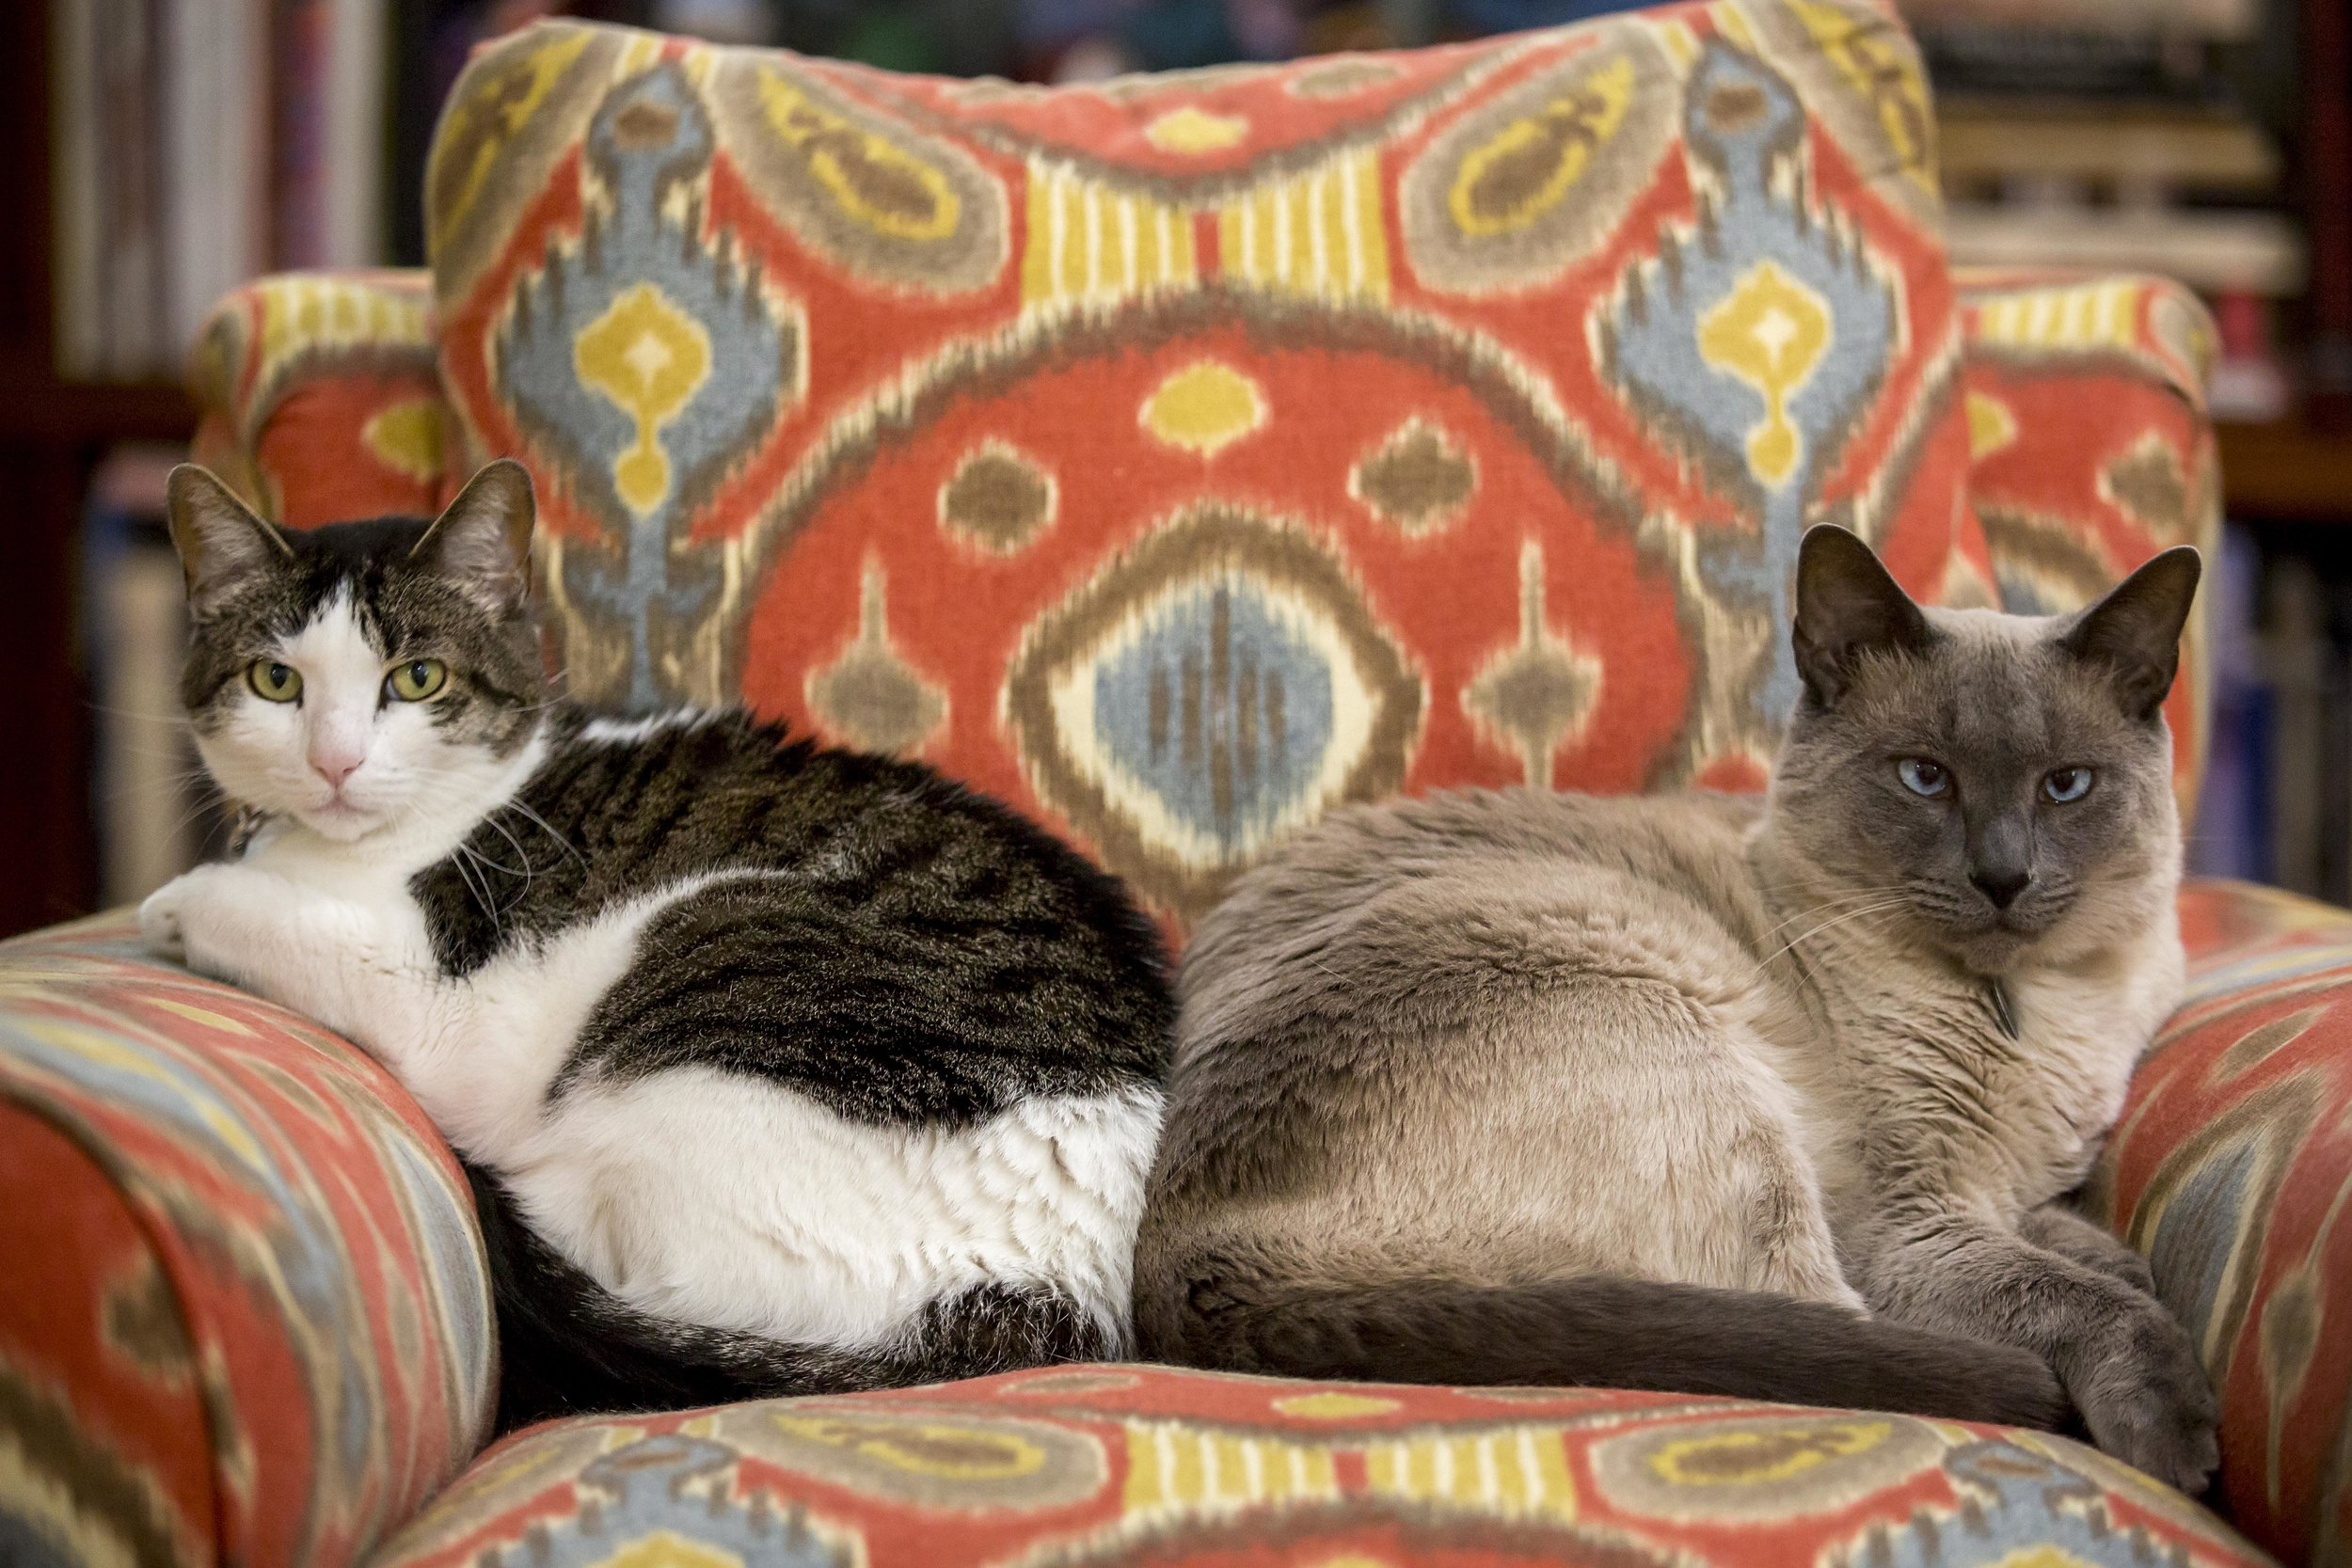 Sadie (left) and Mojo in a rare moment of peaceful cohabitation. @2107 copyright  Smiley N. Pool, photographer